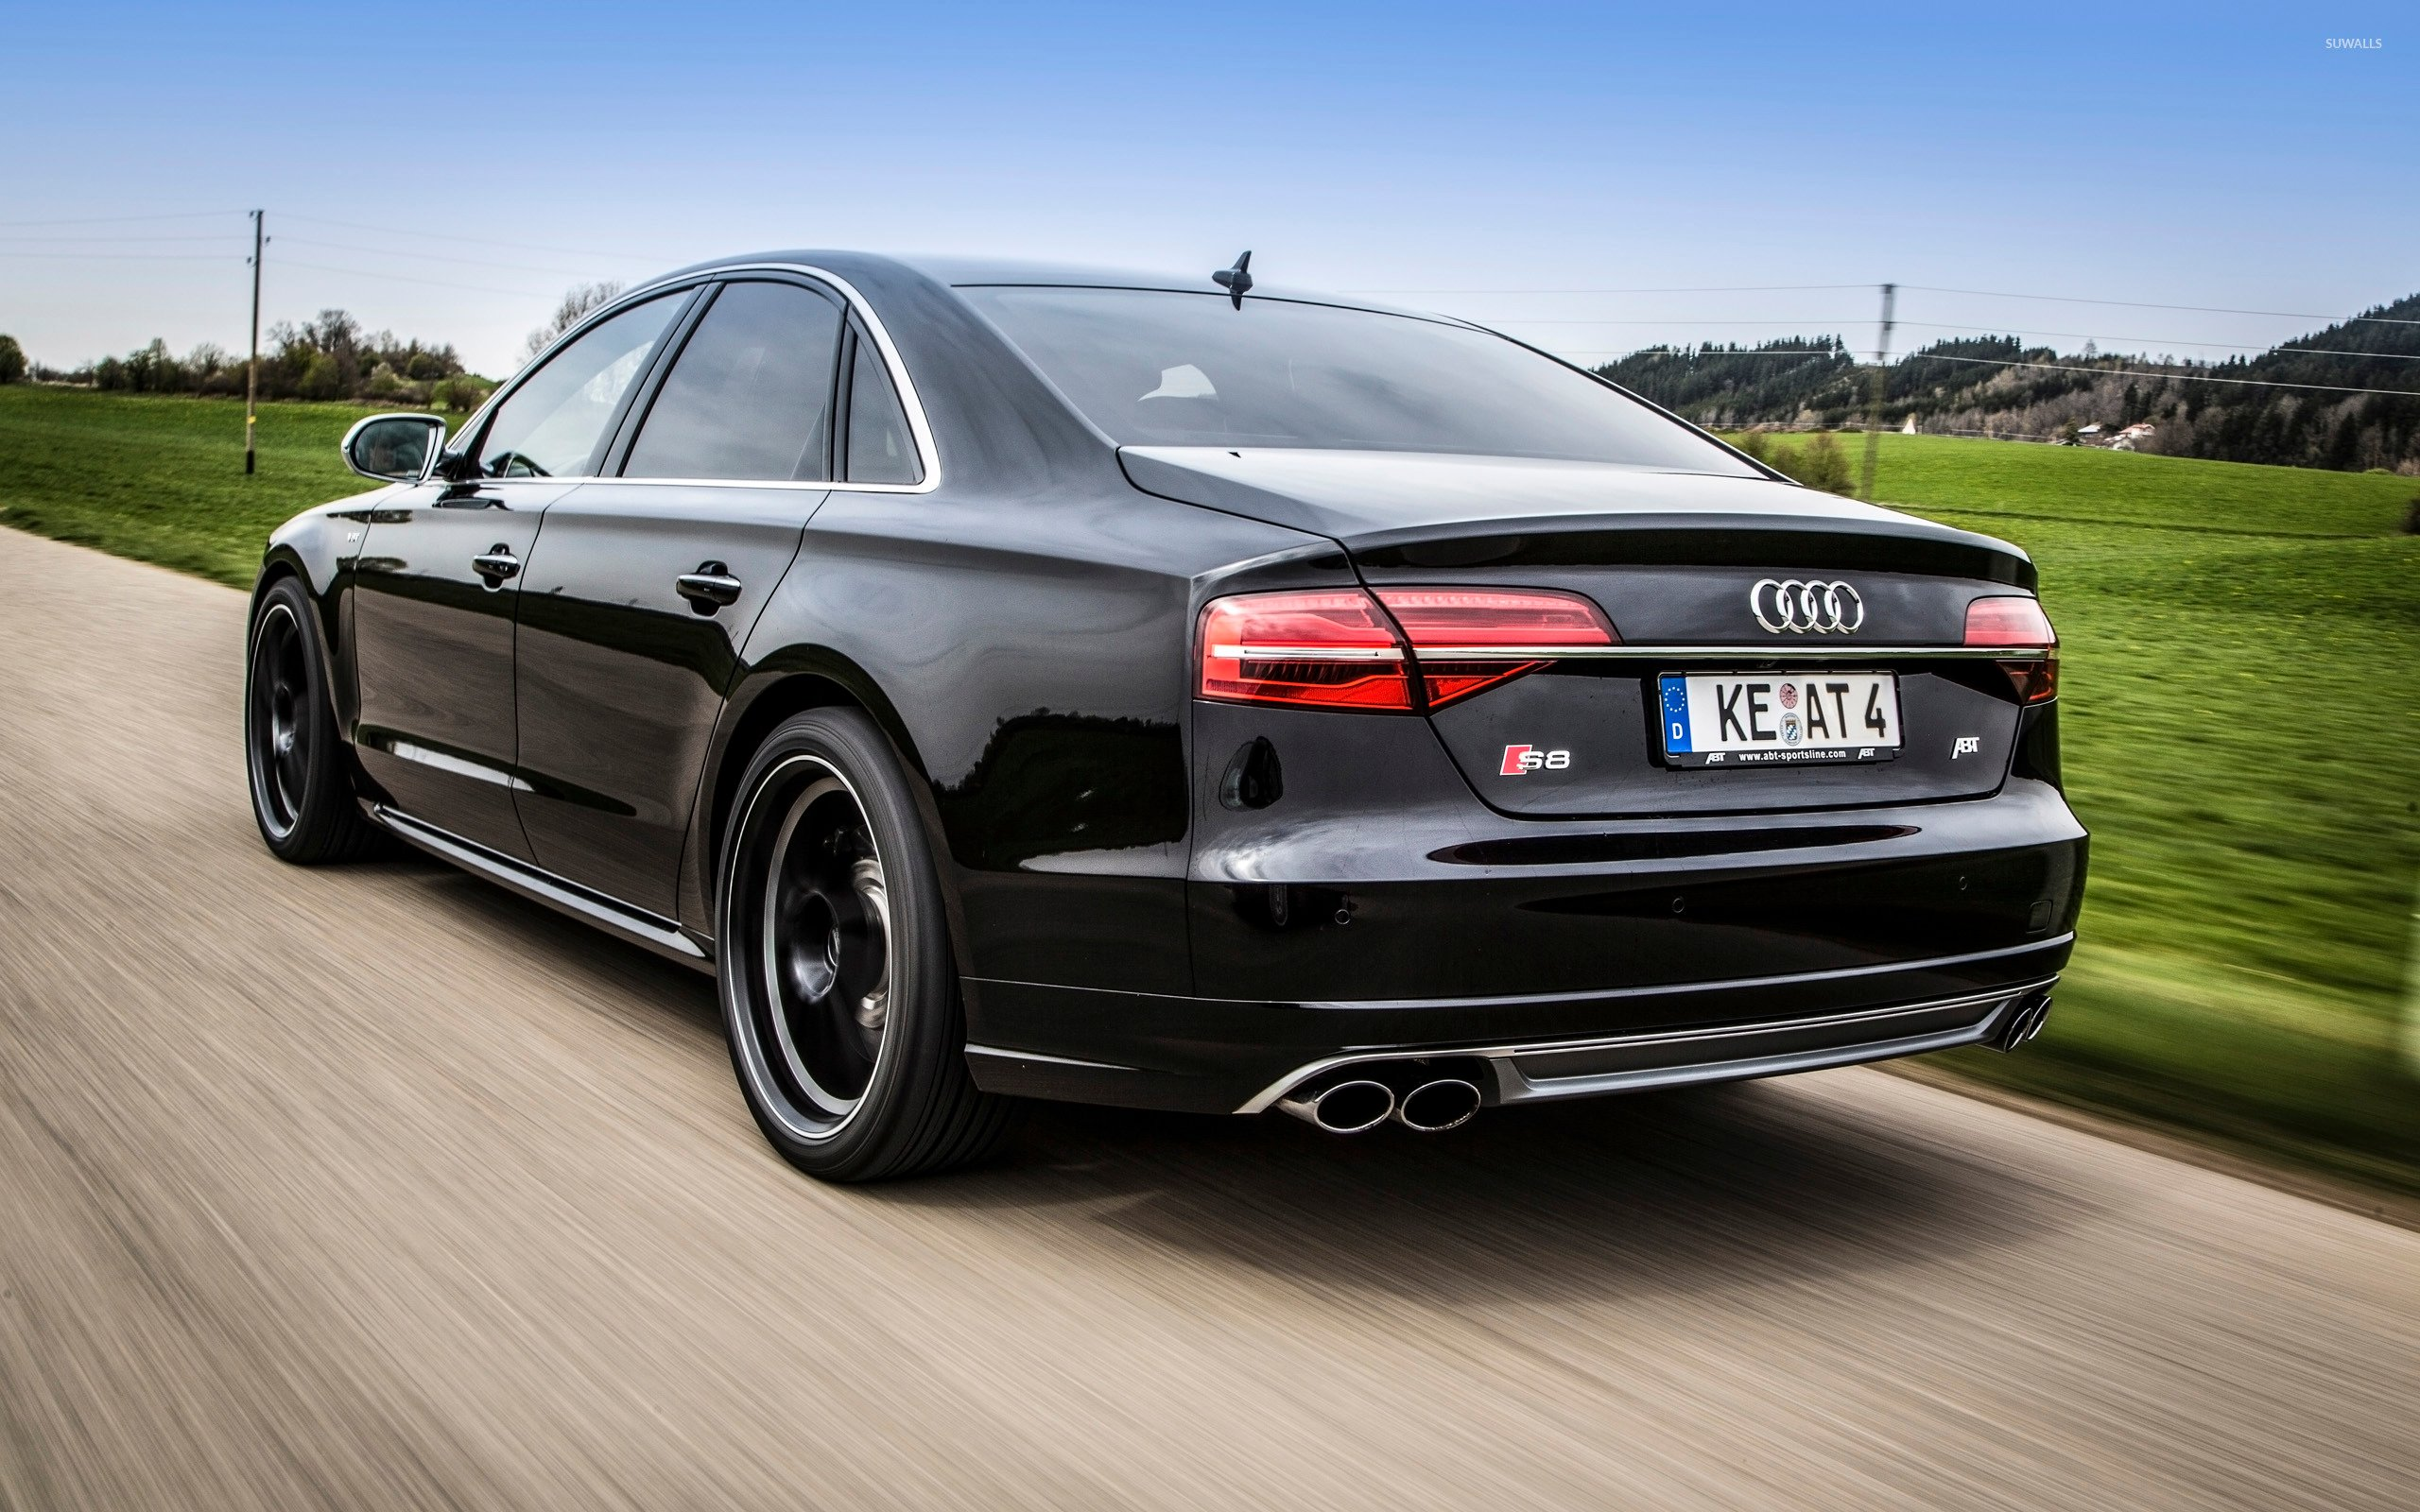 2014 ABT Audi S8 wallpaper   Car wallpapers   39083 2560x1600